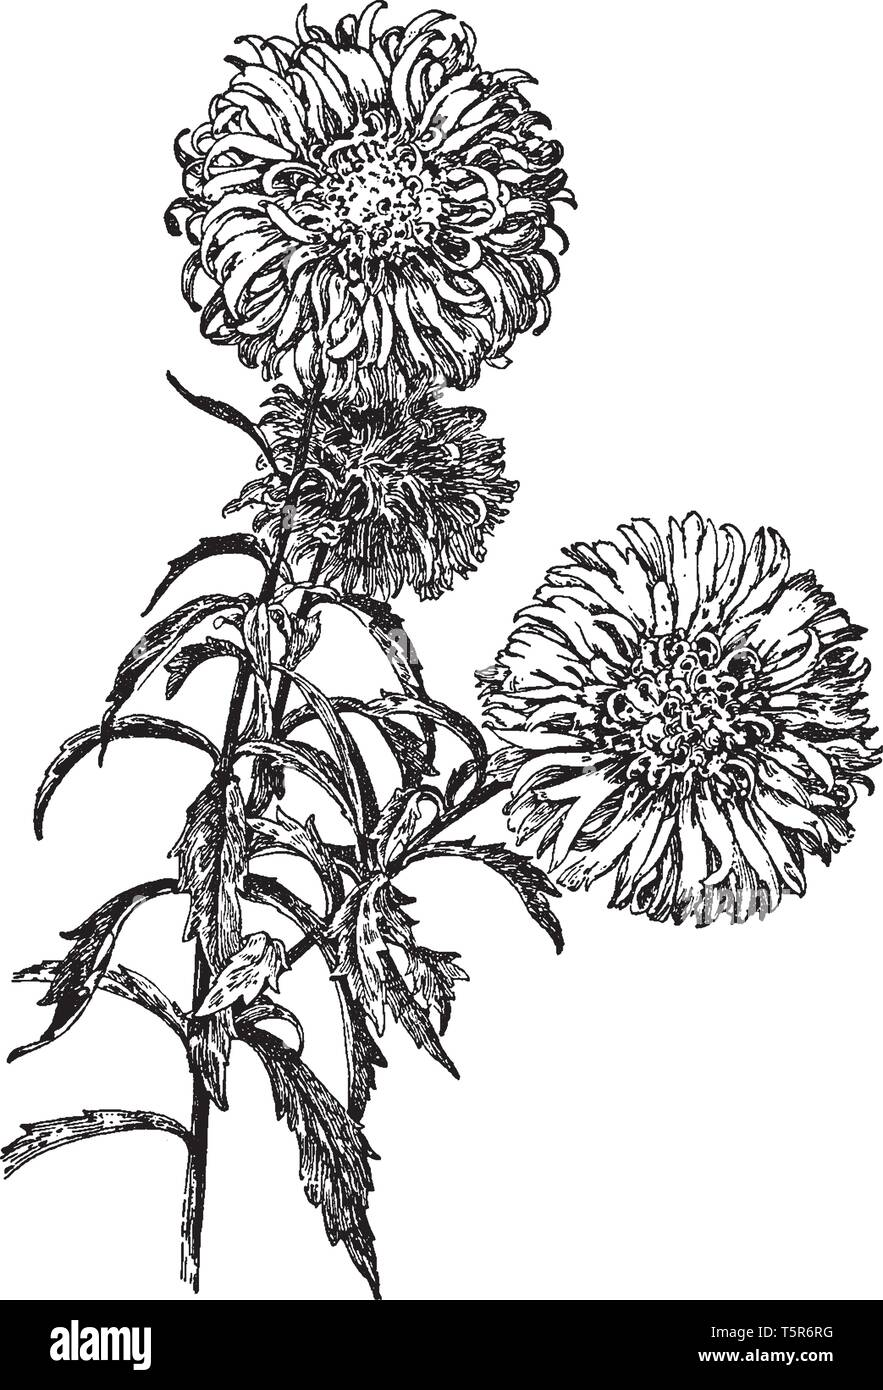 The image shows the comet type of China aster. There are many yellow disc florets in the center. The fruit is a rough-textured, glandular, purple-mott - Stock Image